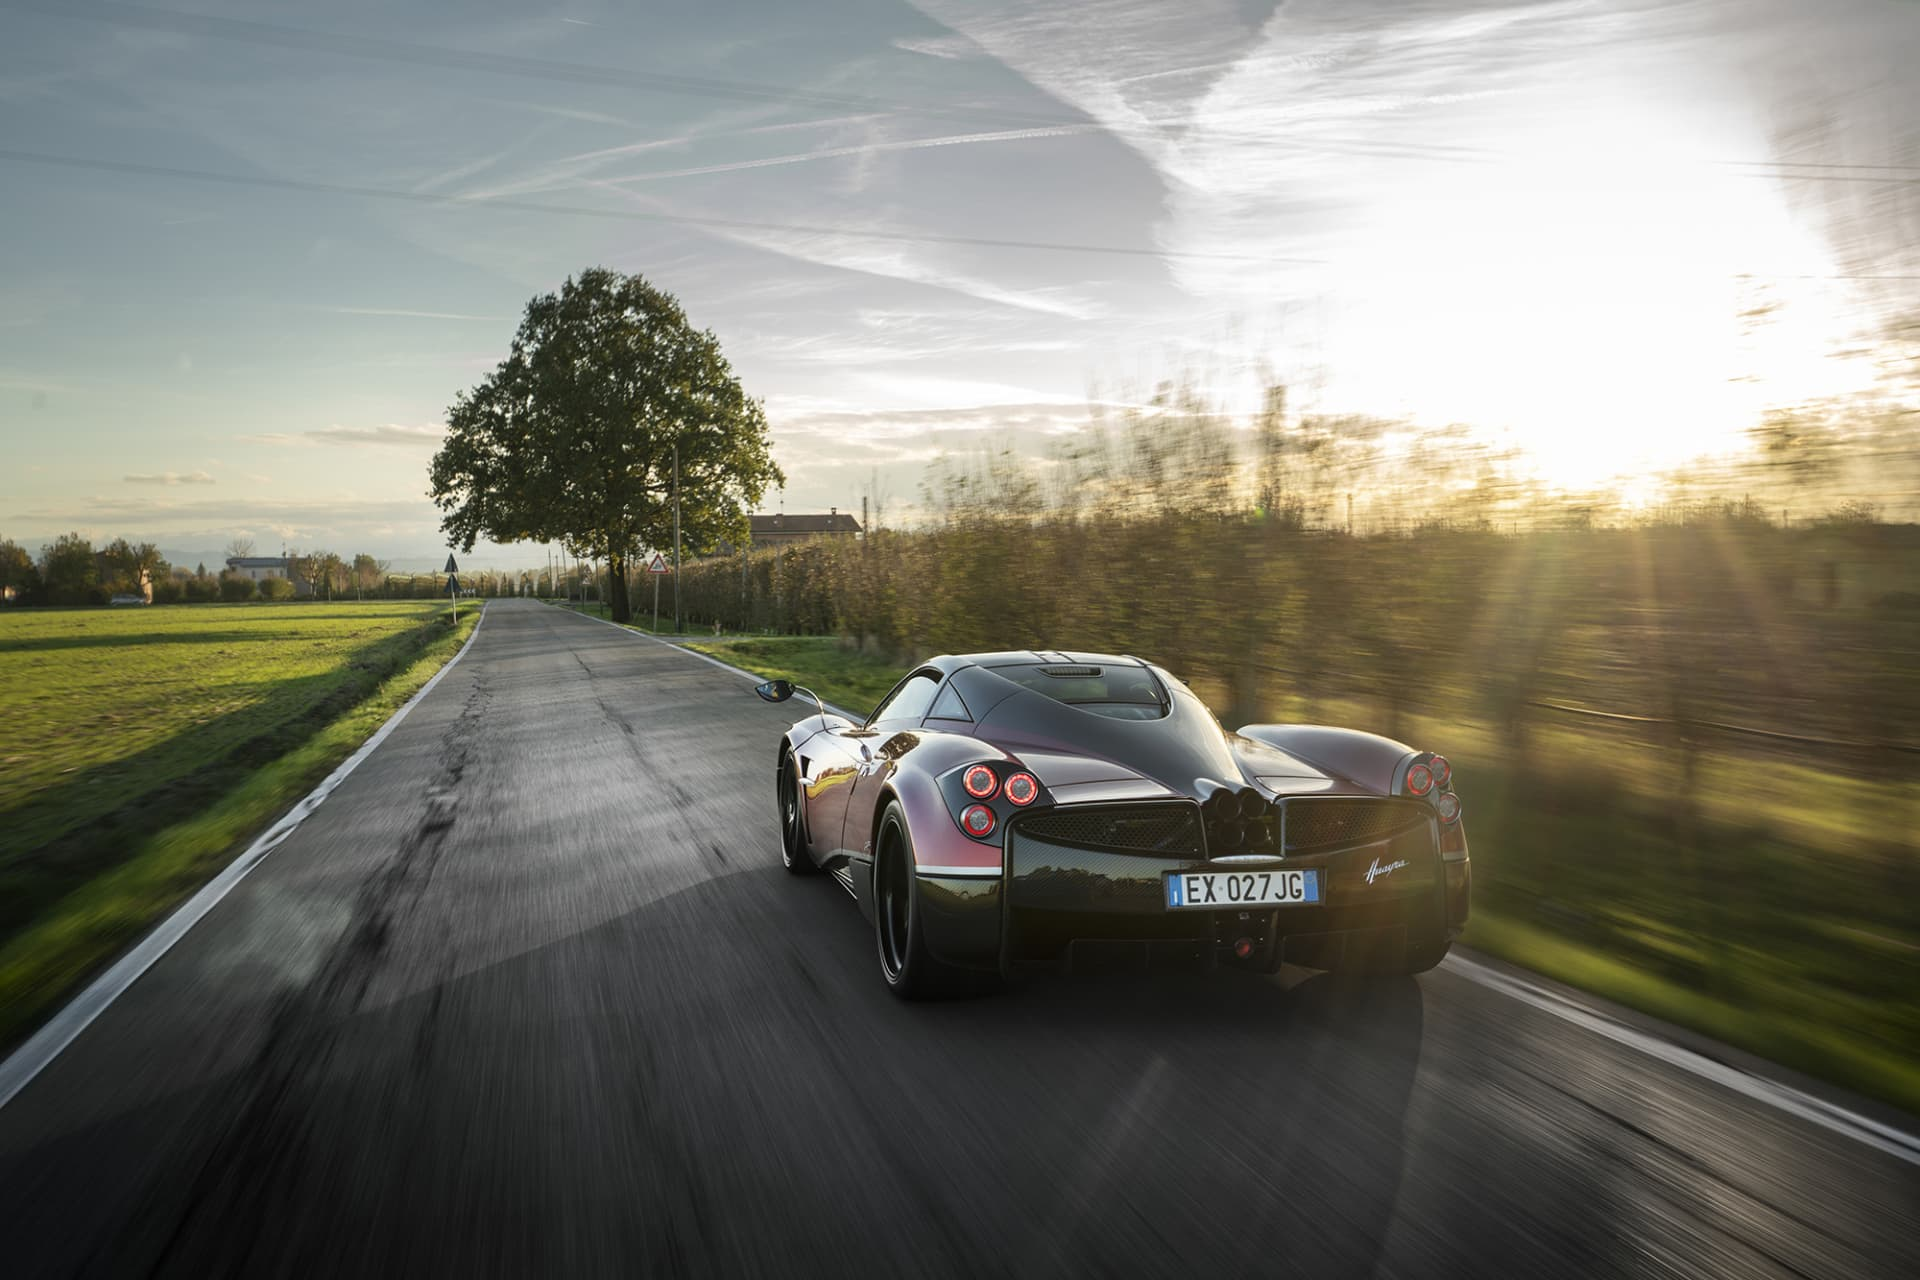 An experience like taken from a dream, a Pagani Huayra at sunset along the vineyards. What the image can't convey is the amazing sound of the twin turbo V12 engine from AMG.